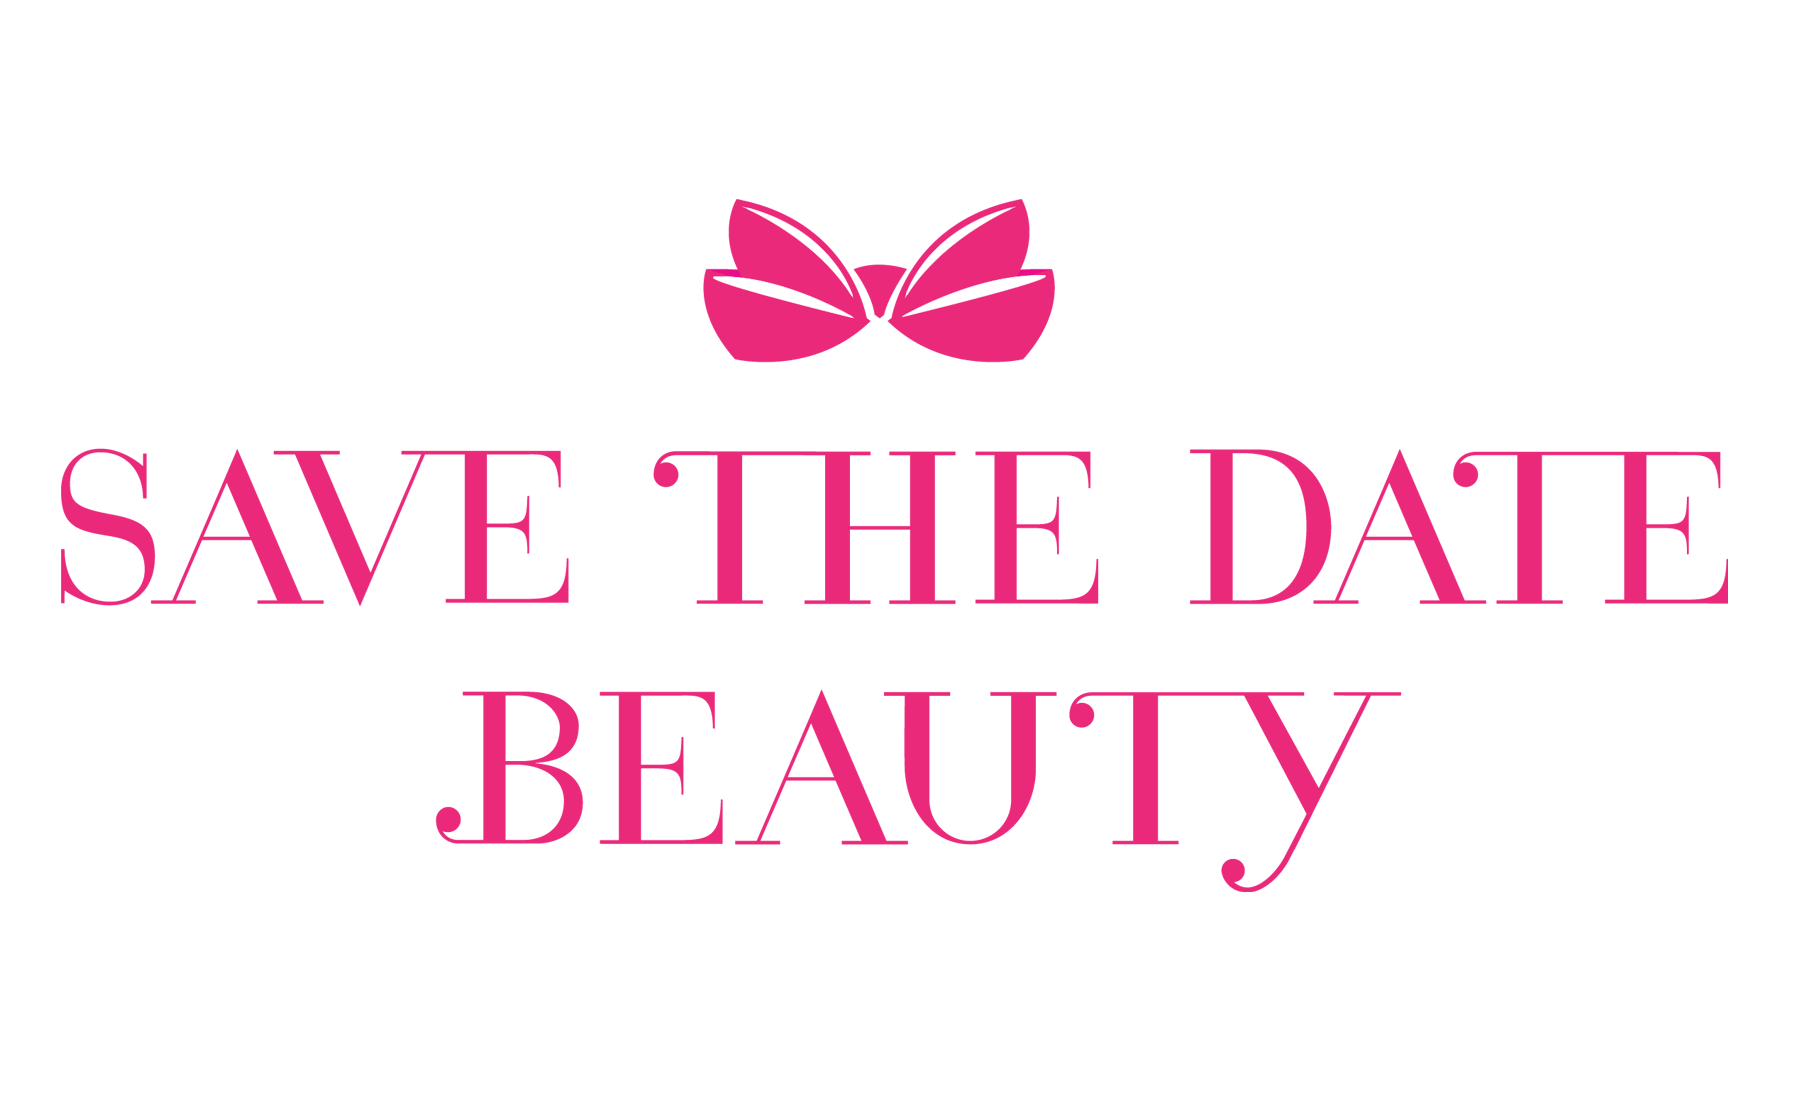 Save the date beauty logo